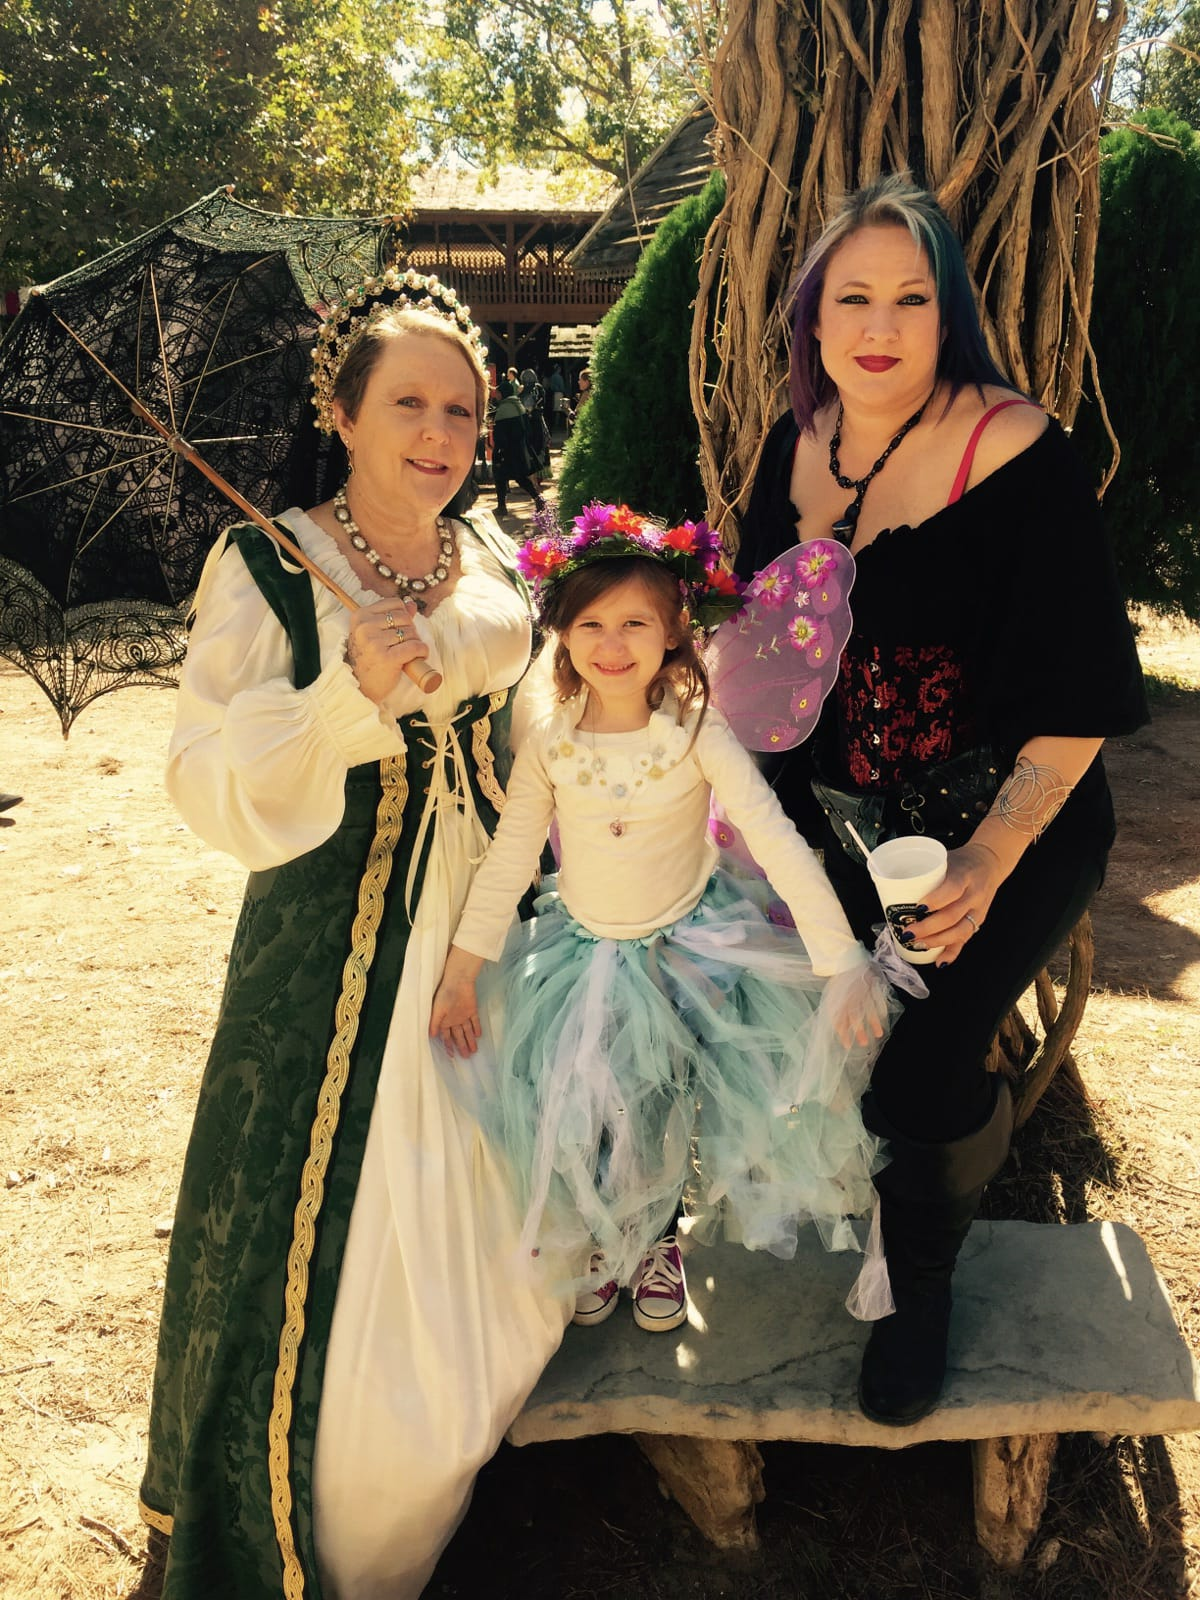 3 Generations Of Faire. Photo By Patti Trapani